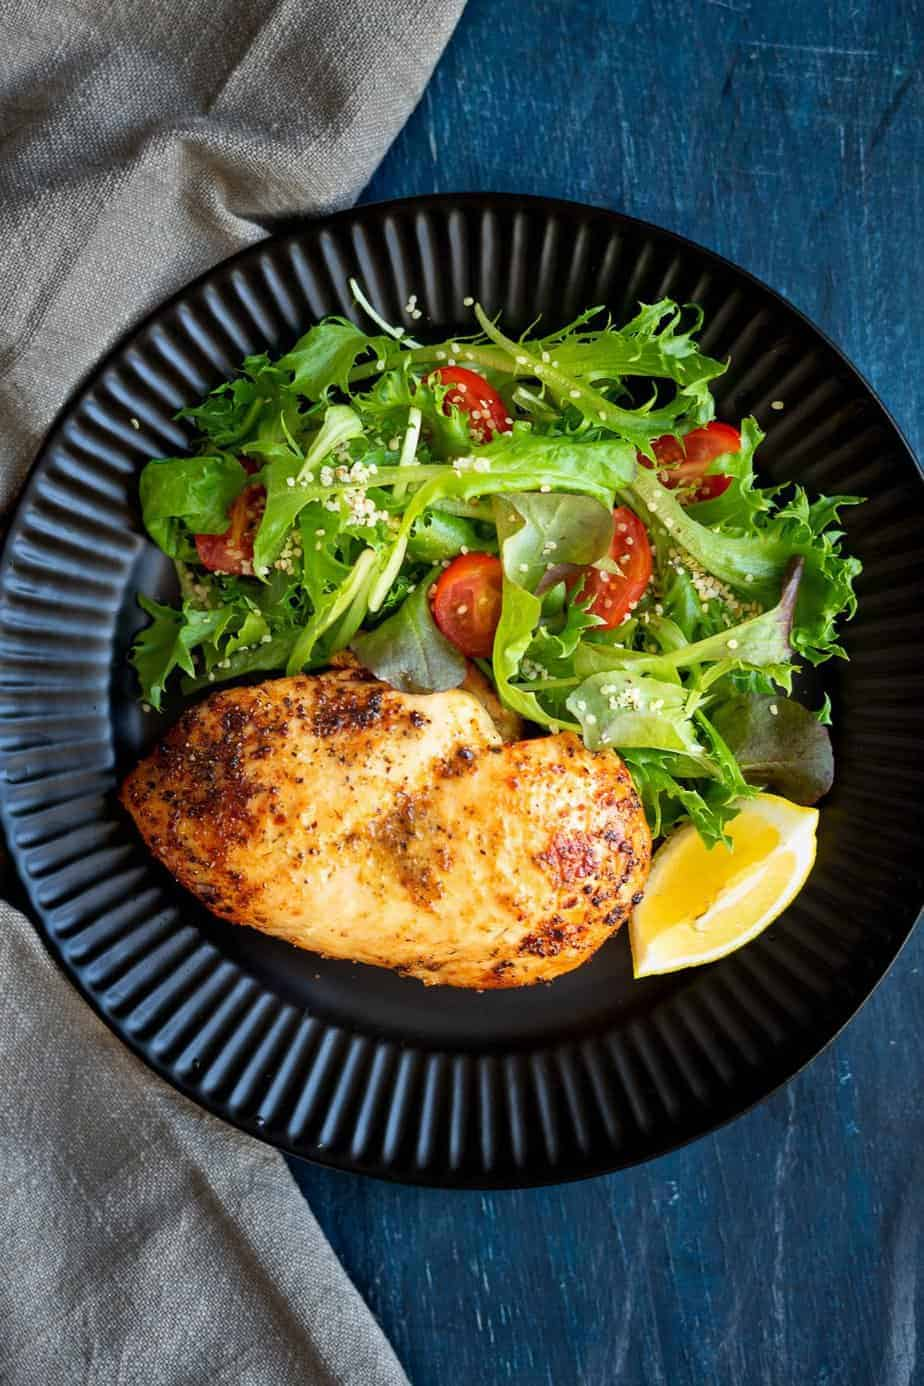 Excellently cooked chicken served with a salad of baby lettuces blend and cherry tomatoes.